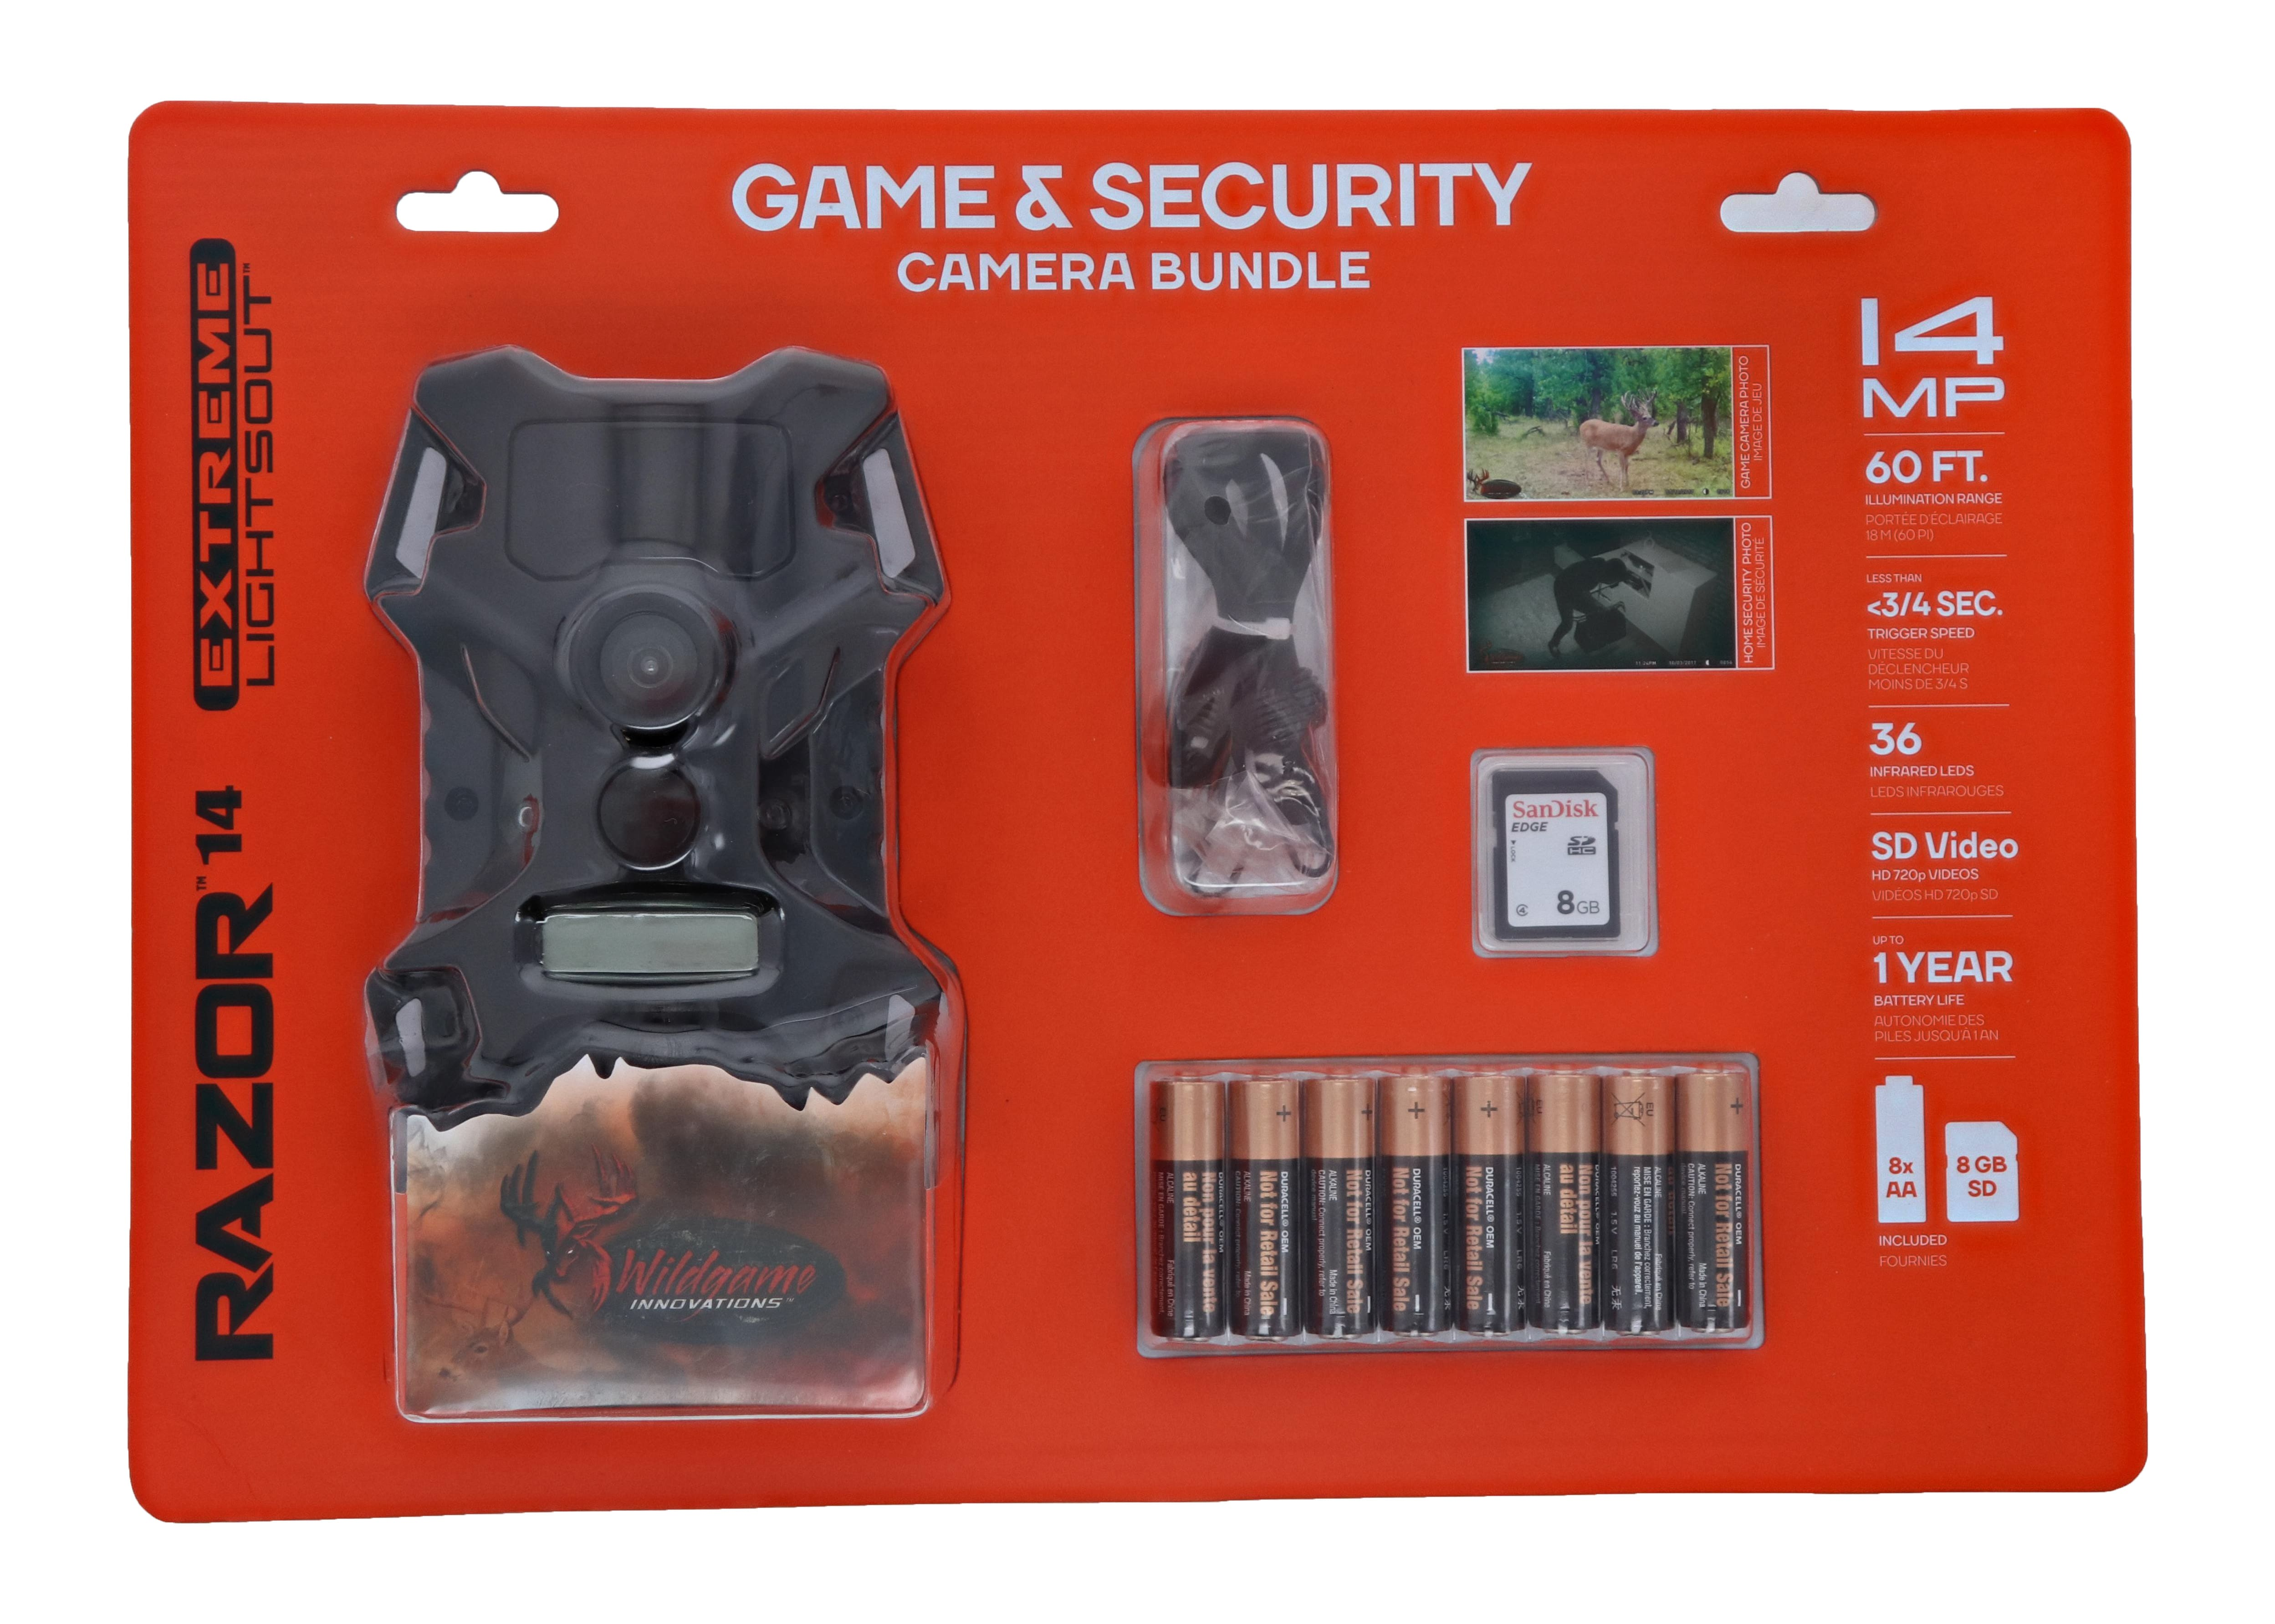 Wildgame Innovations Razor Extreme 14MP Lightsout Game Camera Bundle **Batteries and SD Card Included** $38